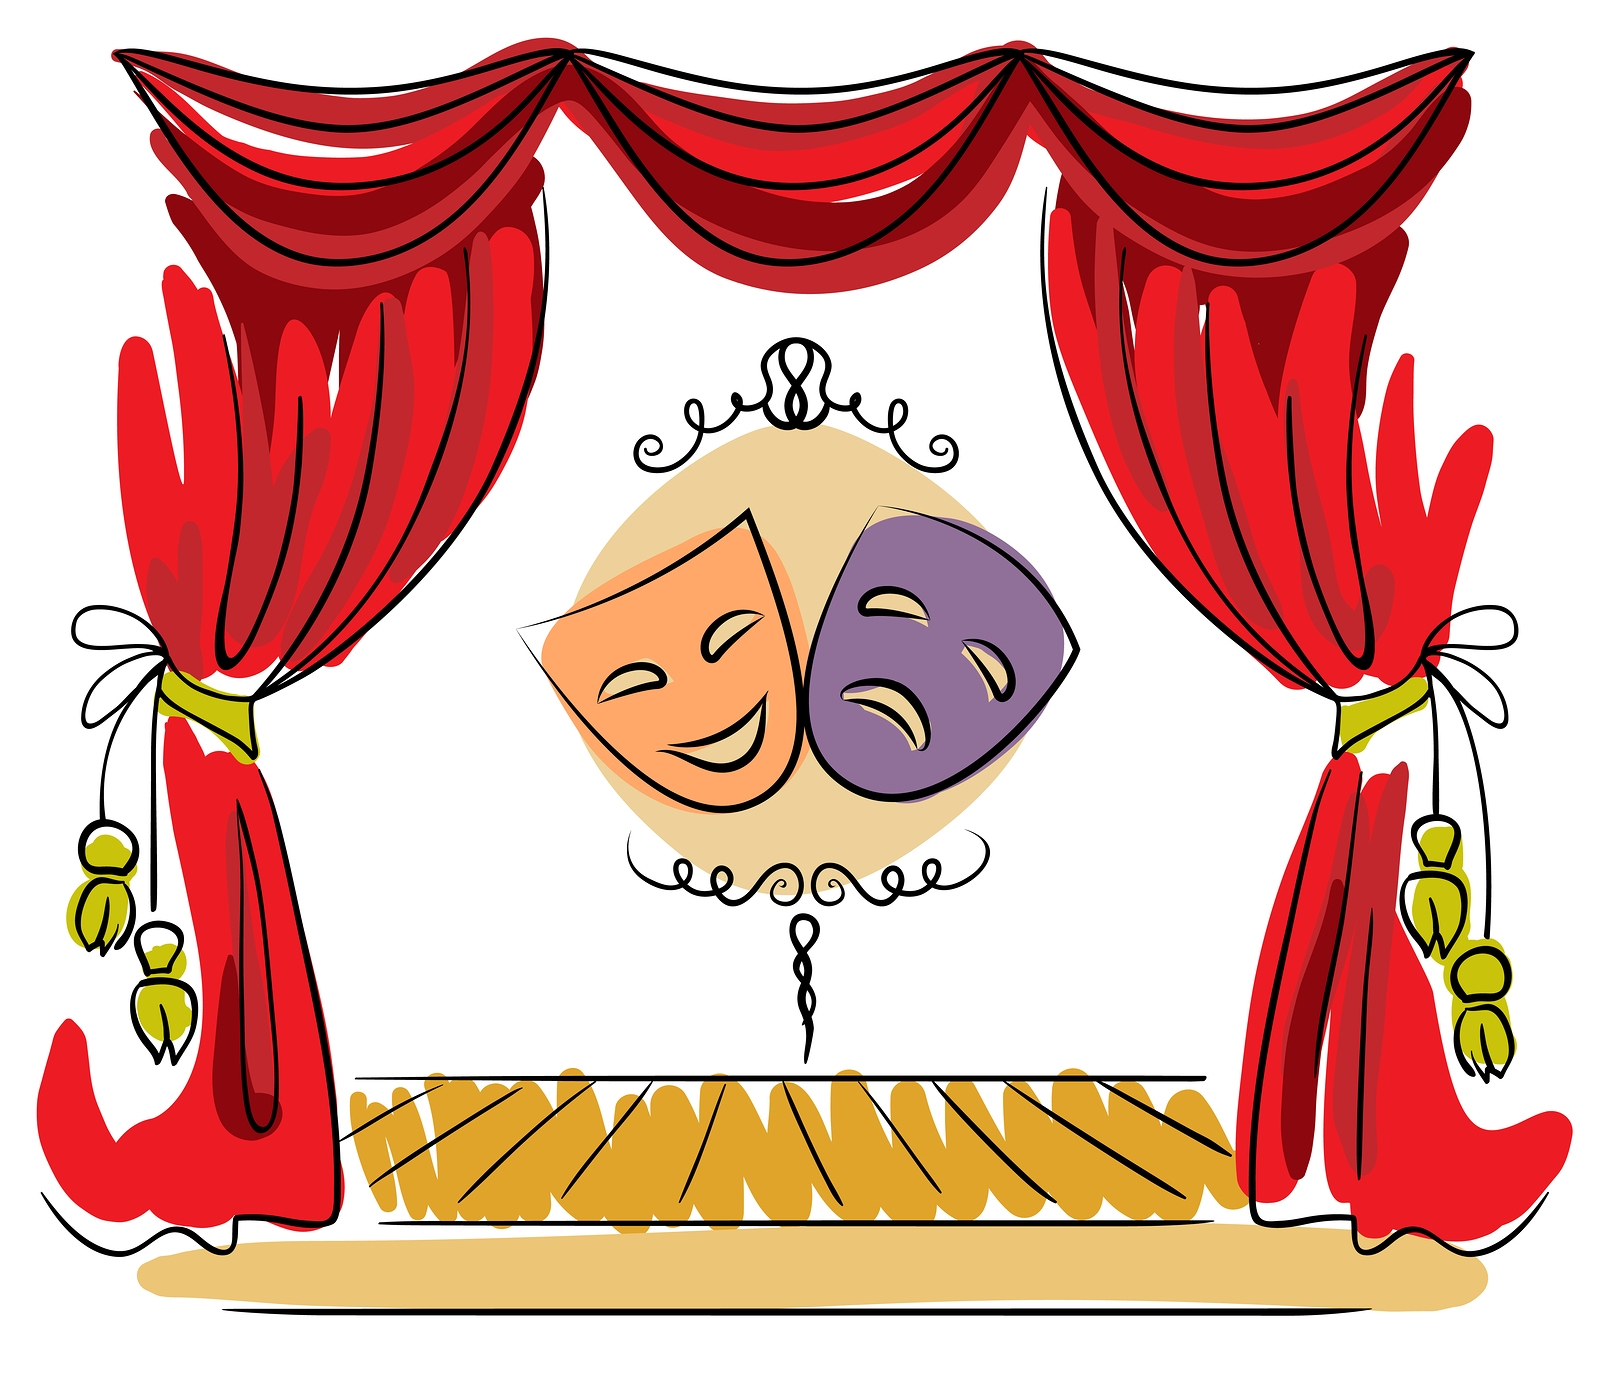 Theater clipart play theatre. Unique design digital collection